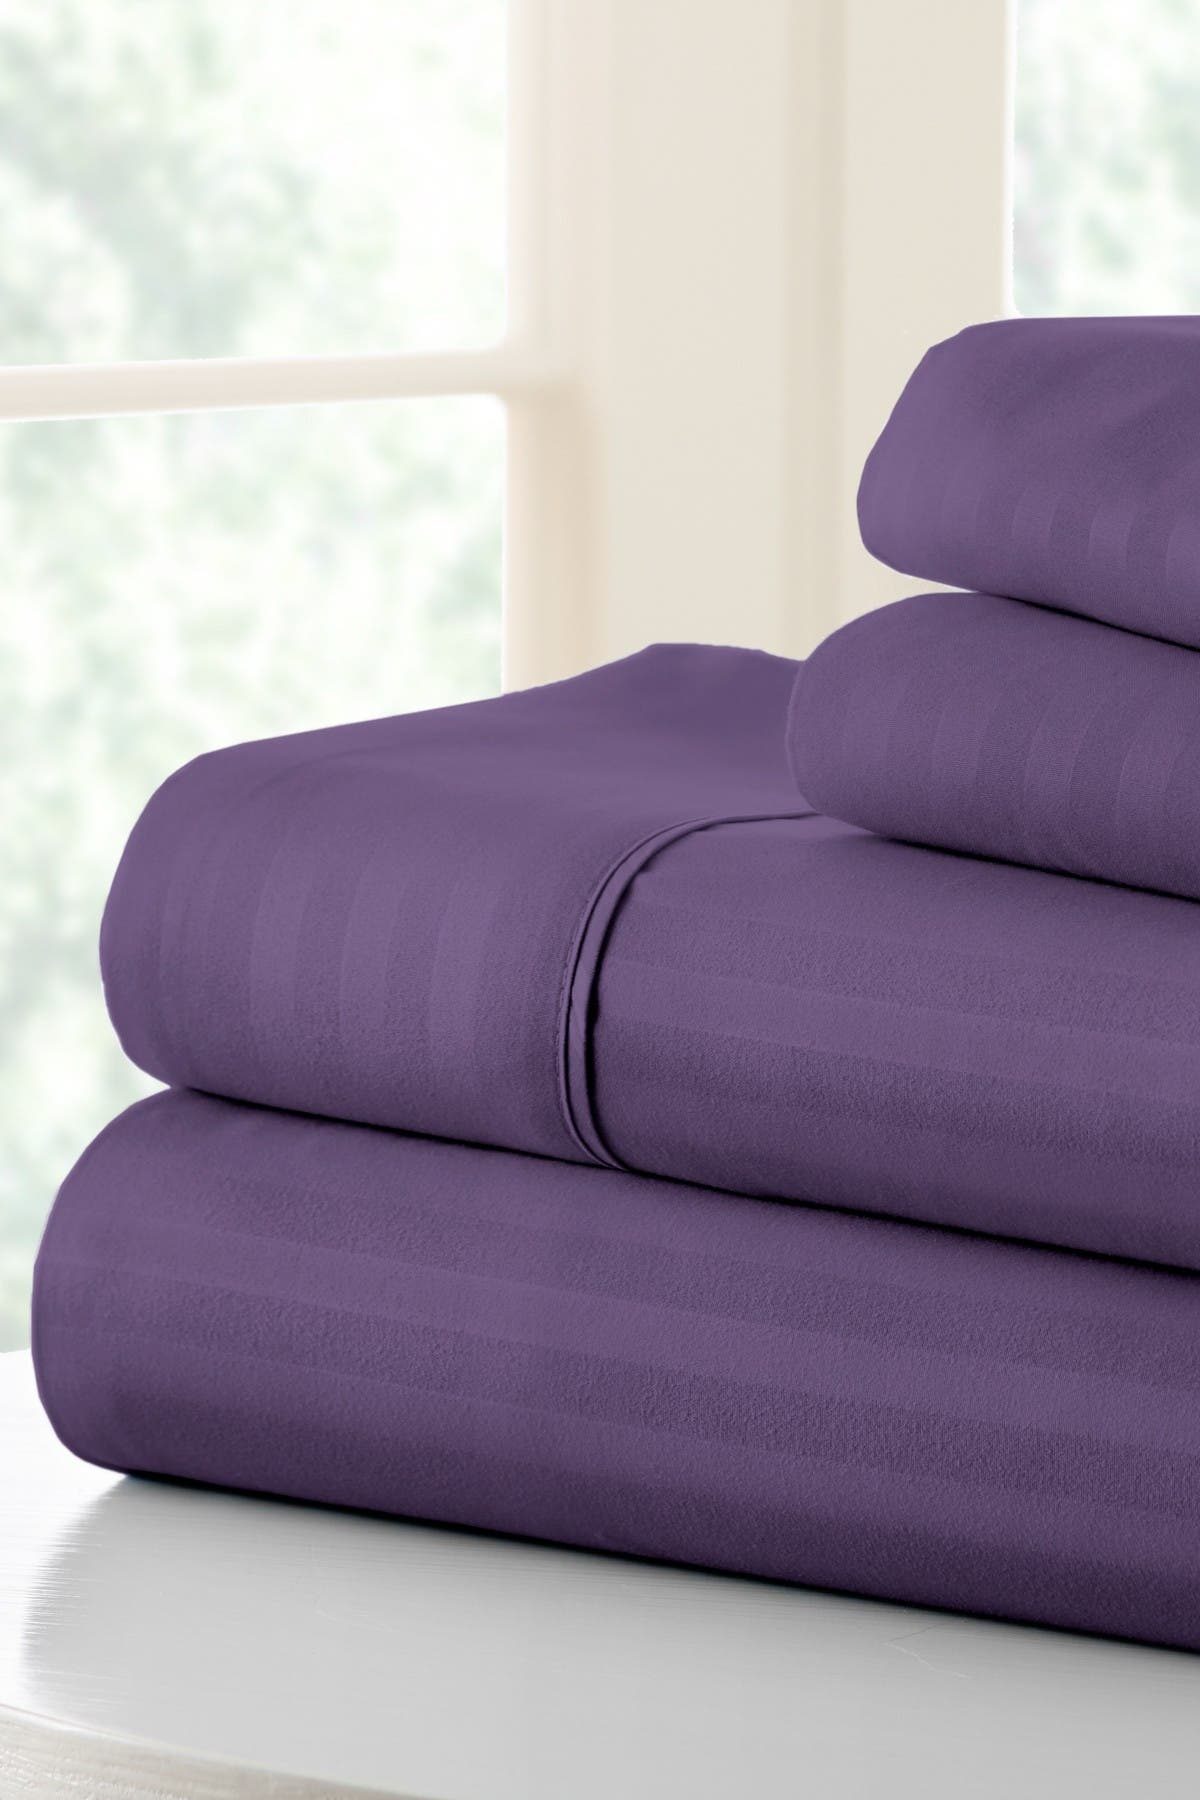 Image of IENJOY HOME Twin Hotel Collection Premium Ultra Soft 3-Piece Striped Bed Sheet Set - Purple